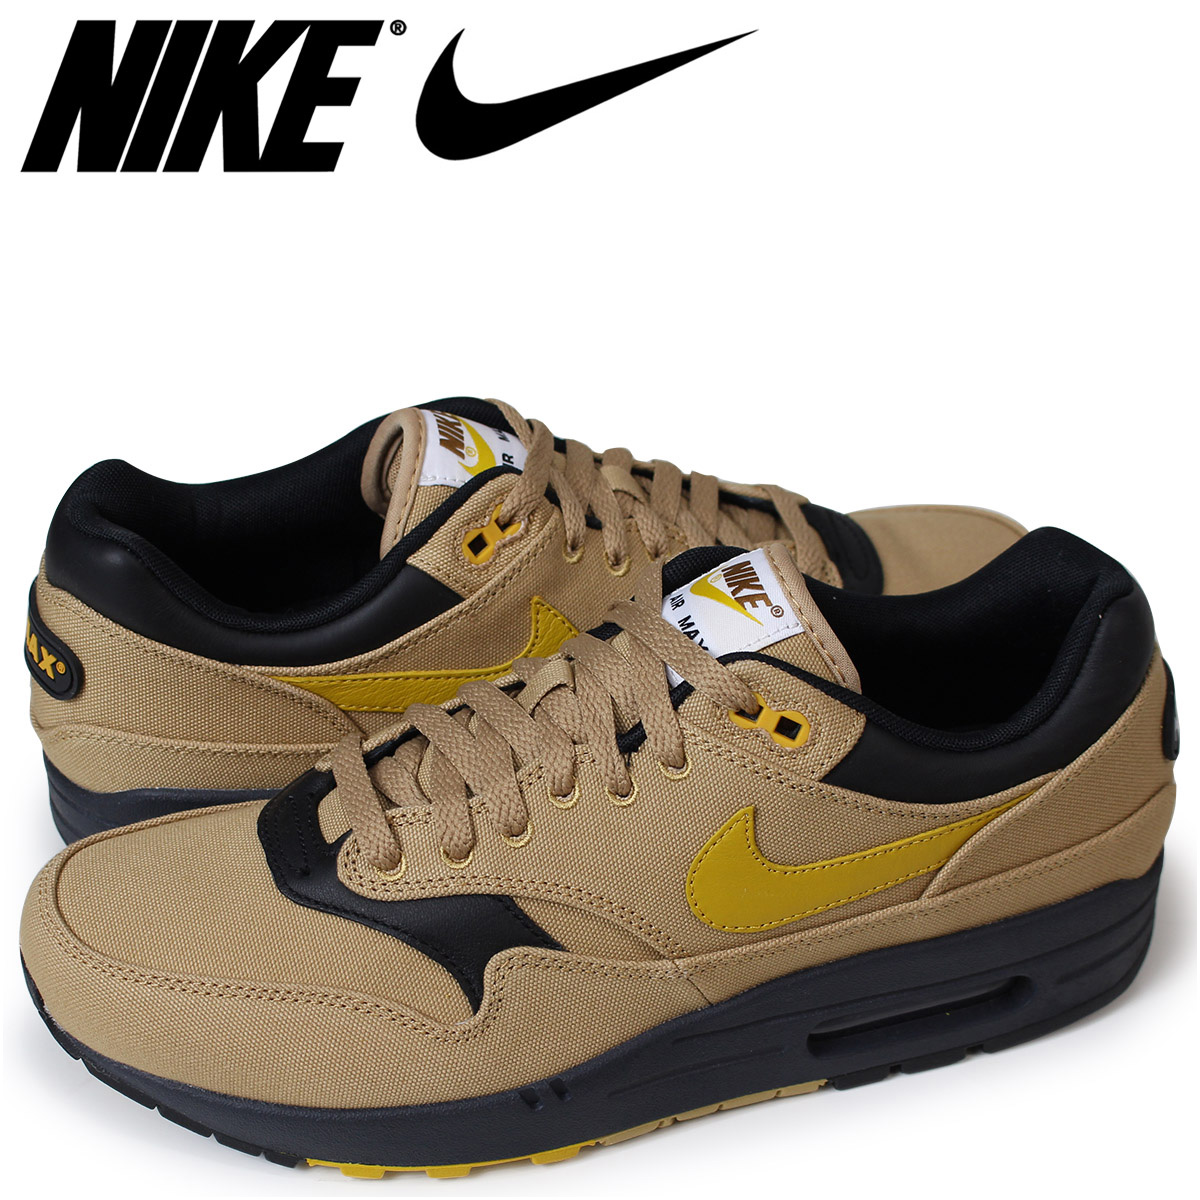 1d8de90af2 Nike NIKE Air Max 1 premium sneakers men AIR MAX 1 PREMIUM 875,844-700  beige ...